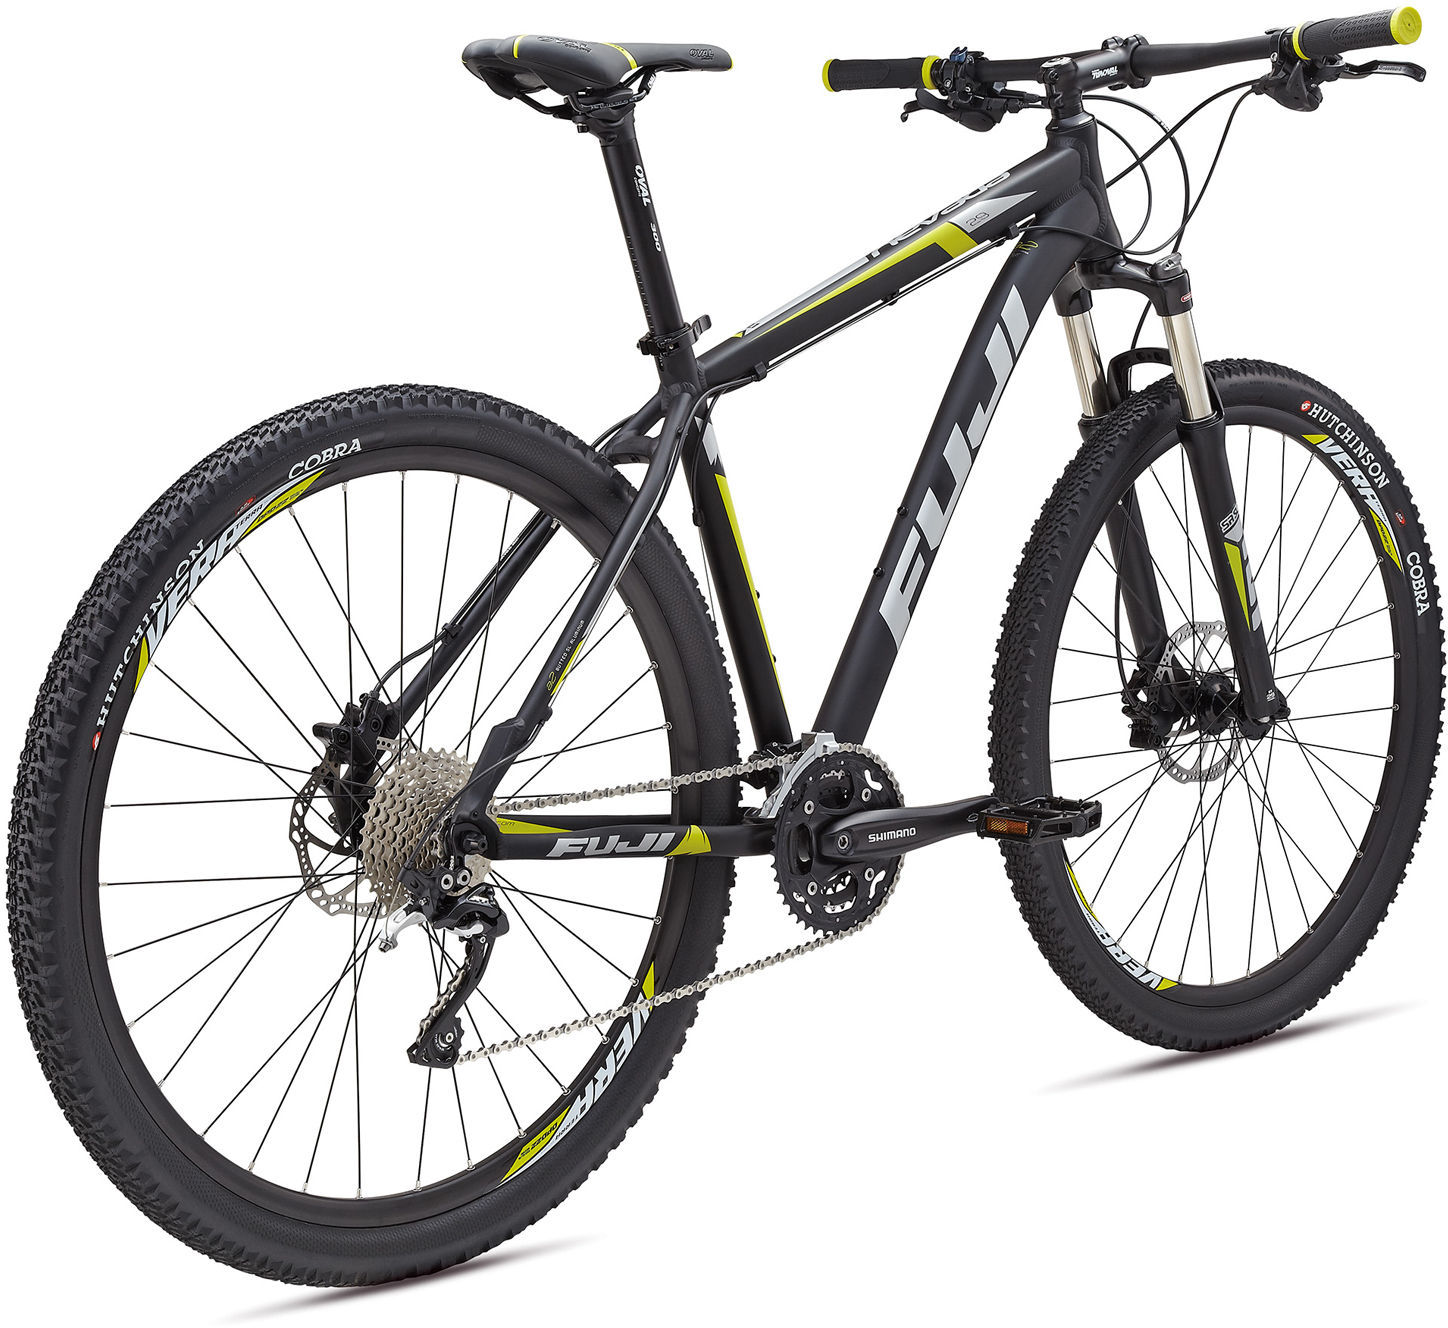 Fuji Nevada 29er 1 1 Disc 2014 Review The Bike List